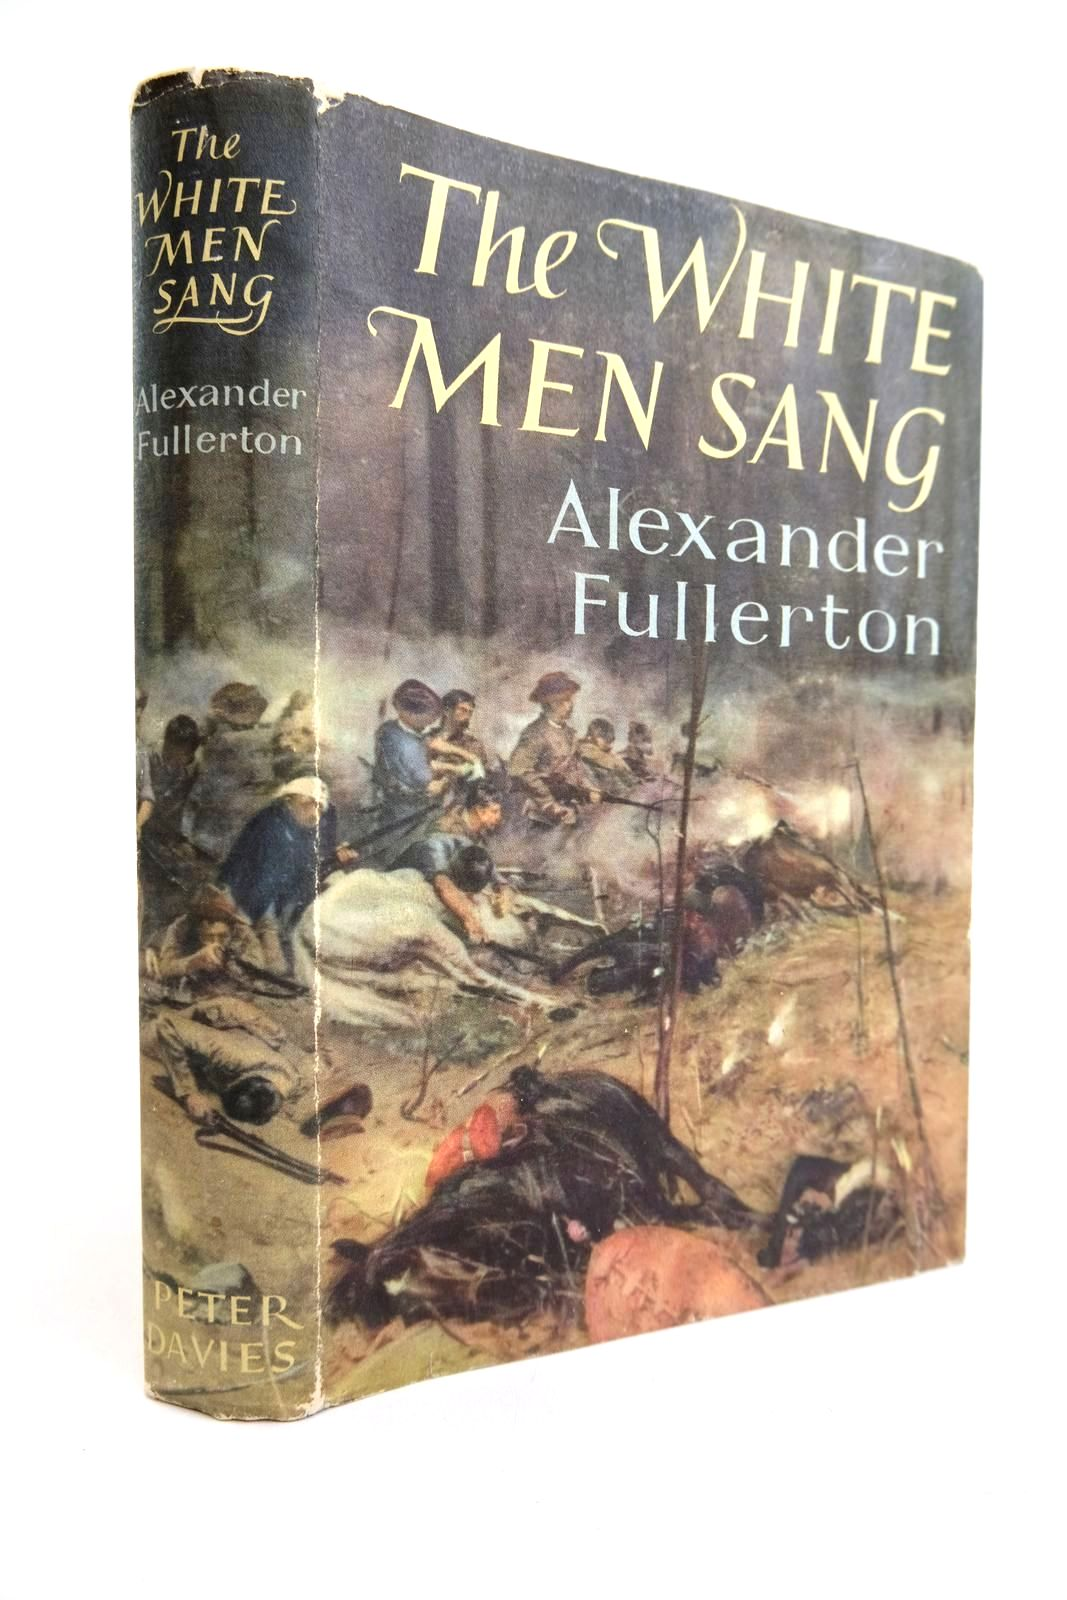 Photo of THE WHITE MEN SANG written by Fullerton, Alexander published by Peter Davies (STOCK CODE: 2132320)  for sale by Stella & Rose's Books